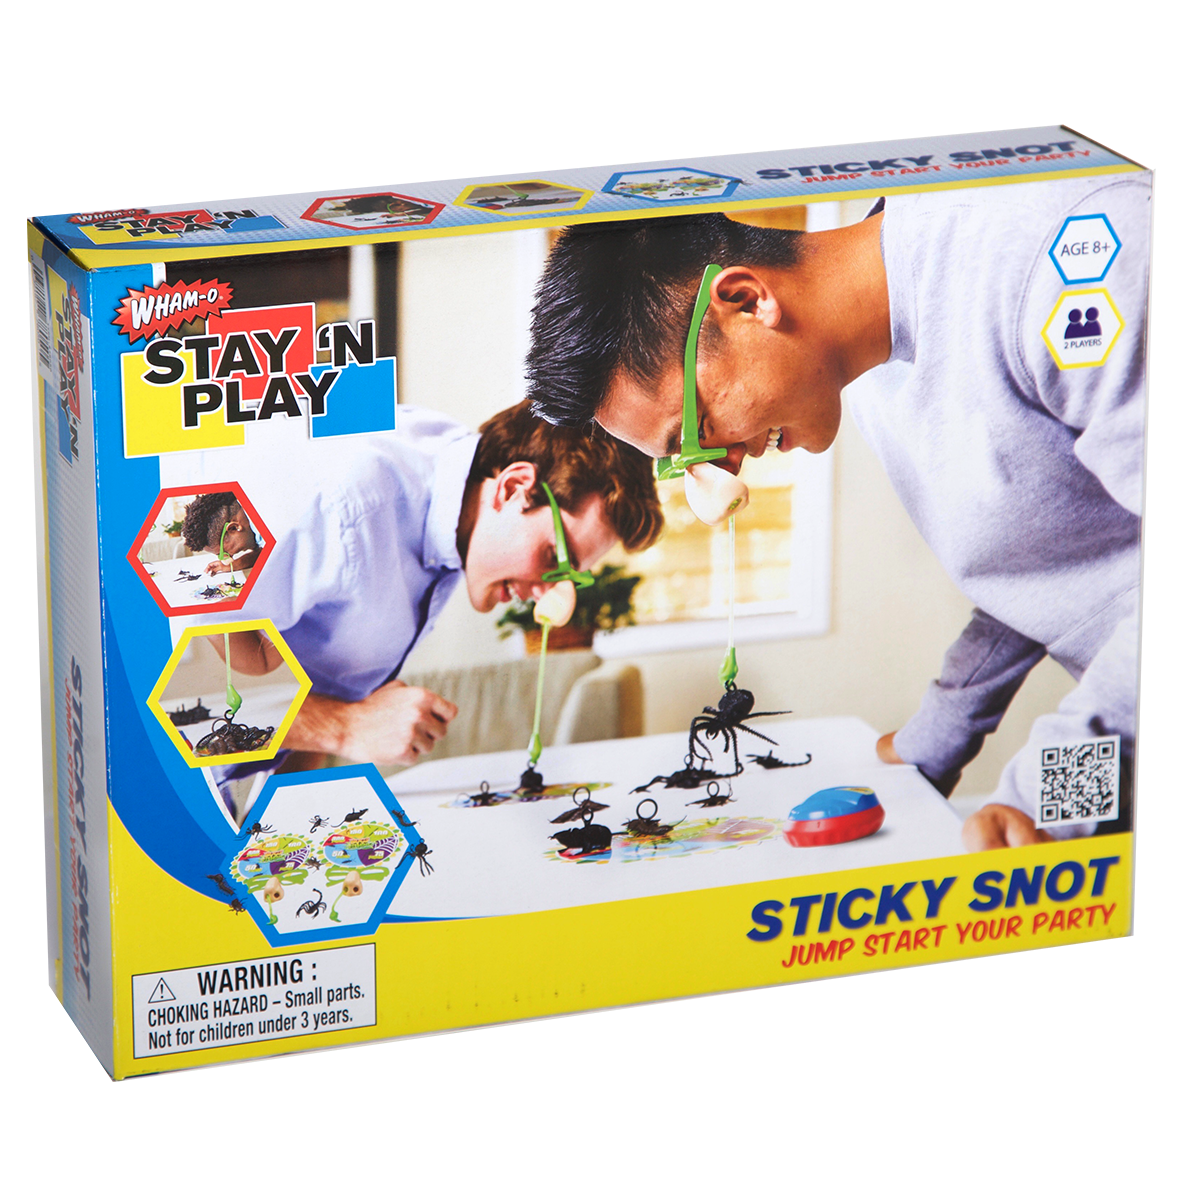 Sticky Snot - Stay 'N Play